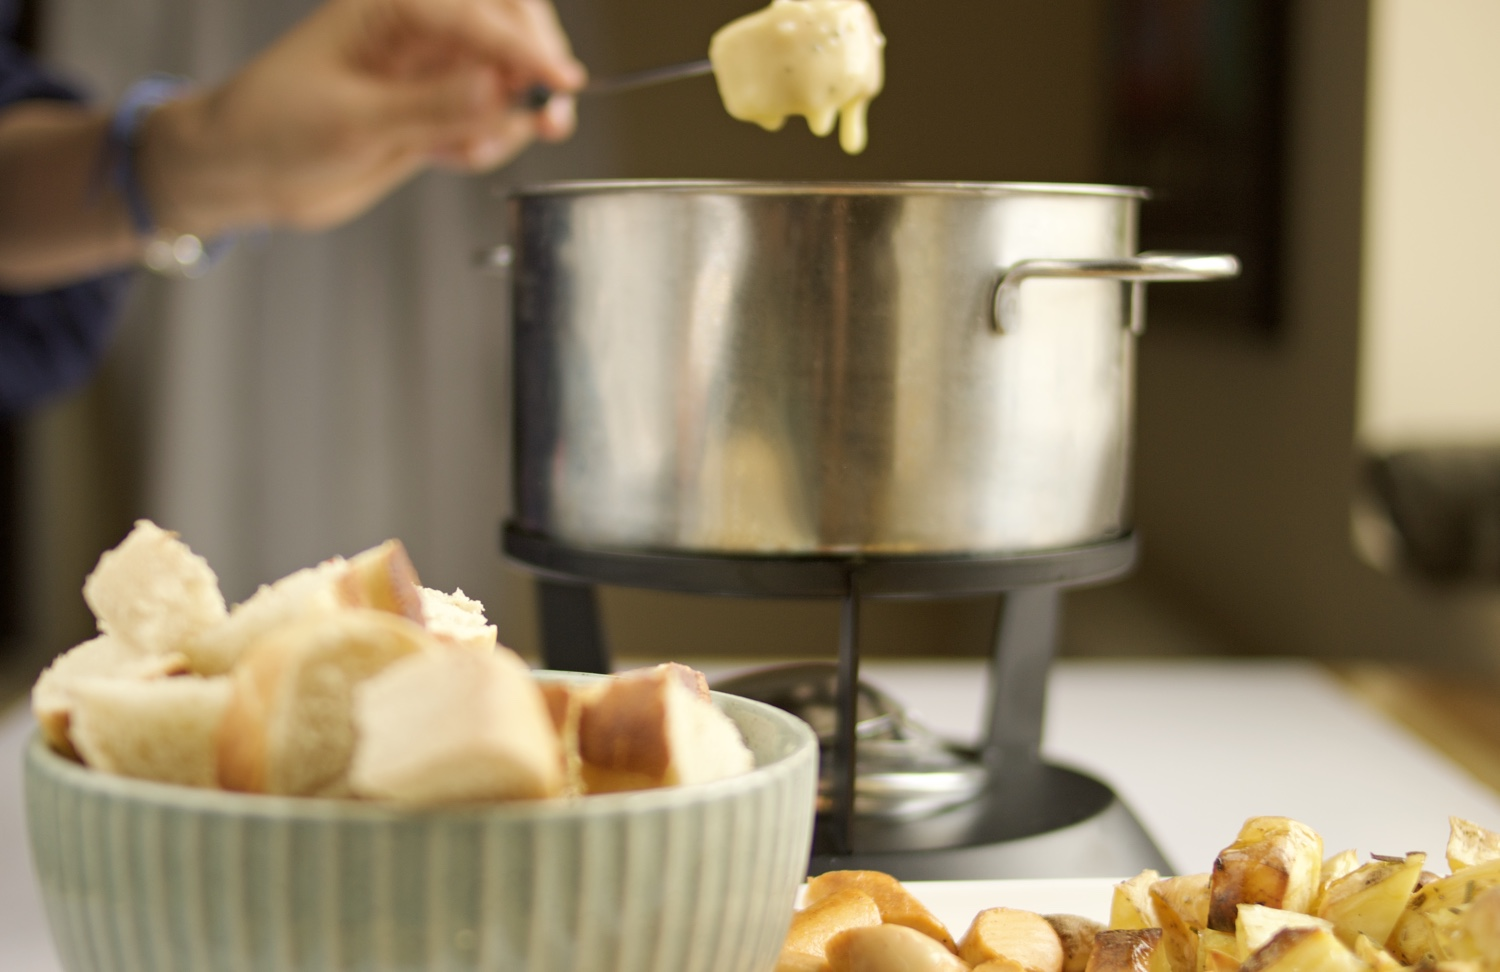 How to make vegan cheese fondue or a vegan cheese sauce or dip